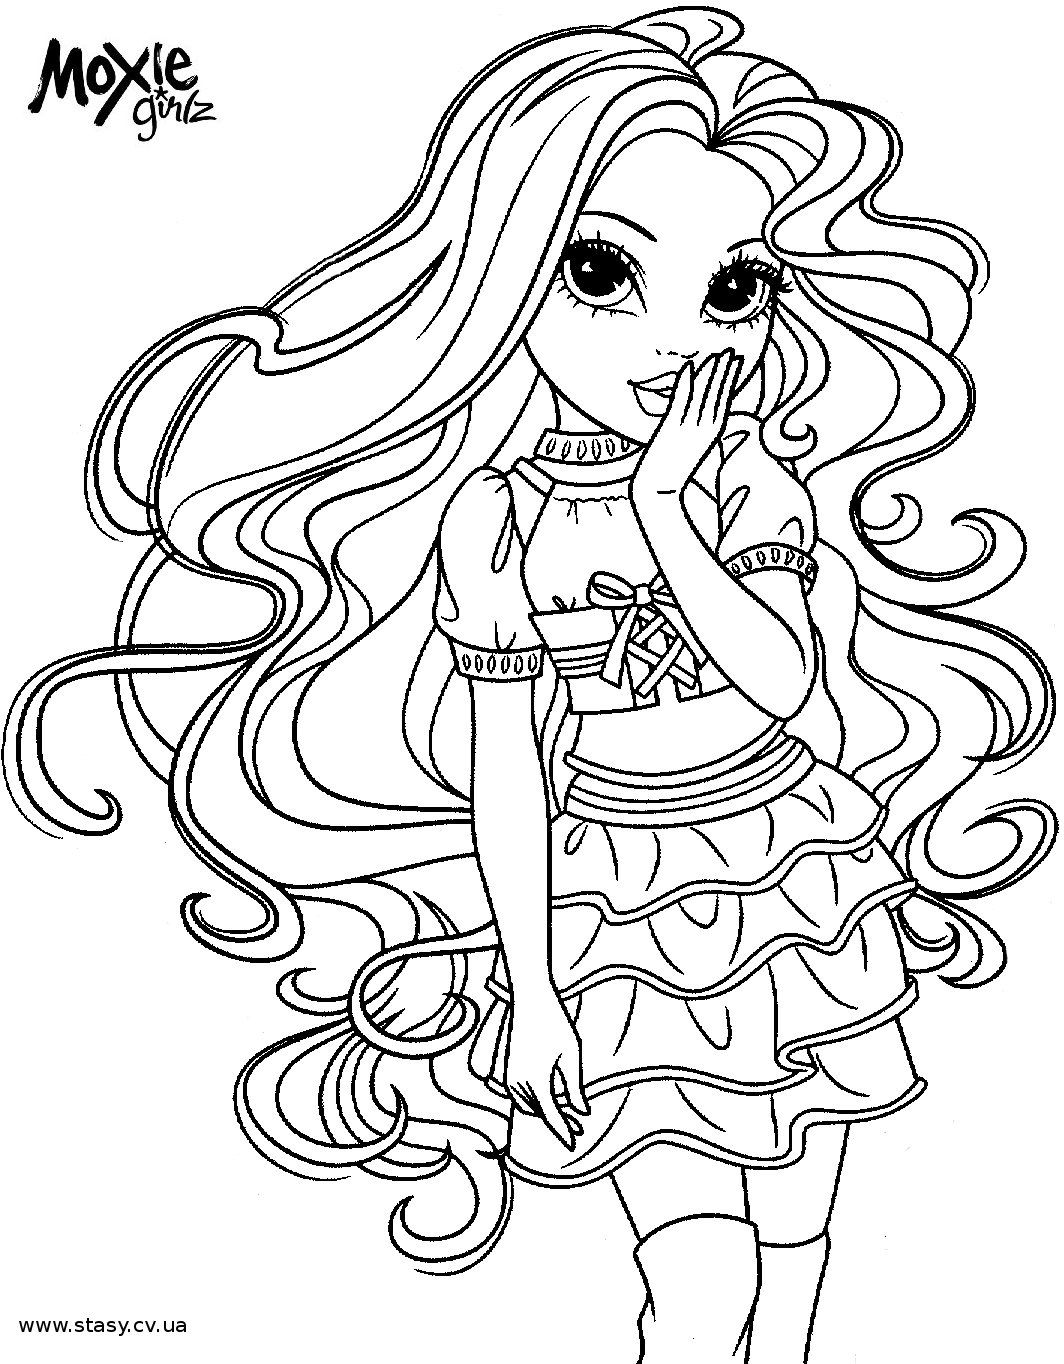 Moxie Girlz Coloring Pages Photo 4 For The Garden Pinterest